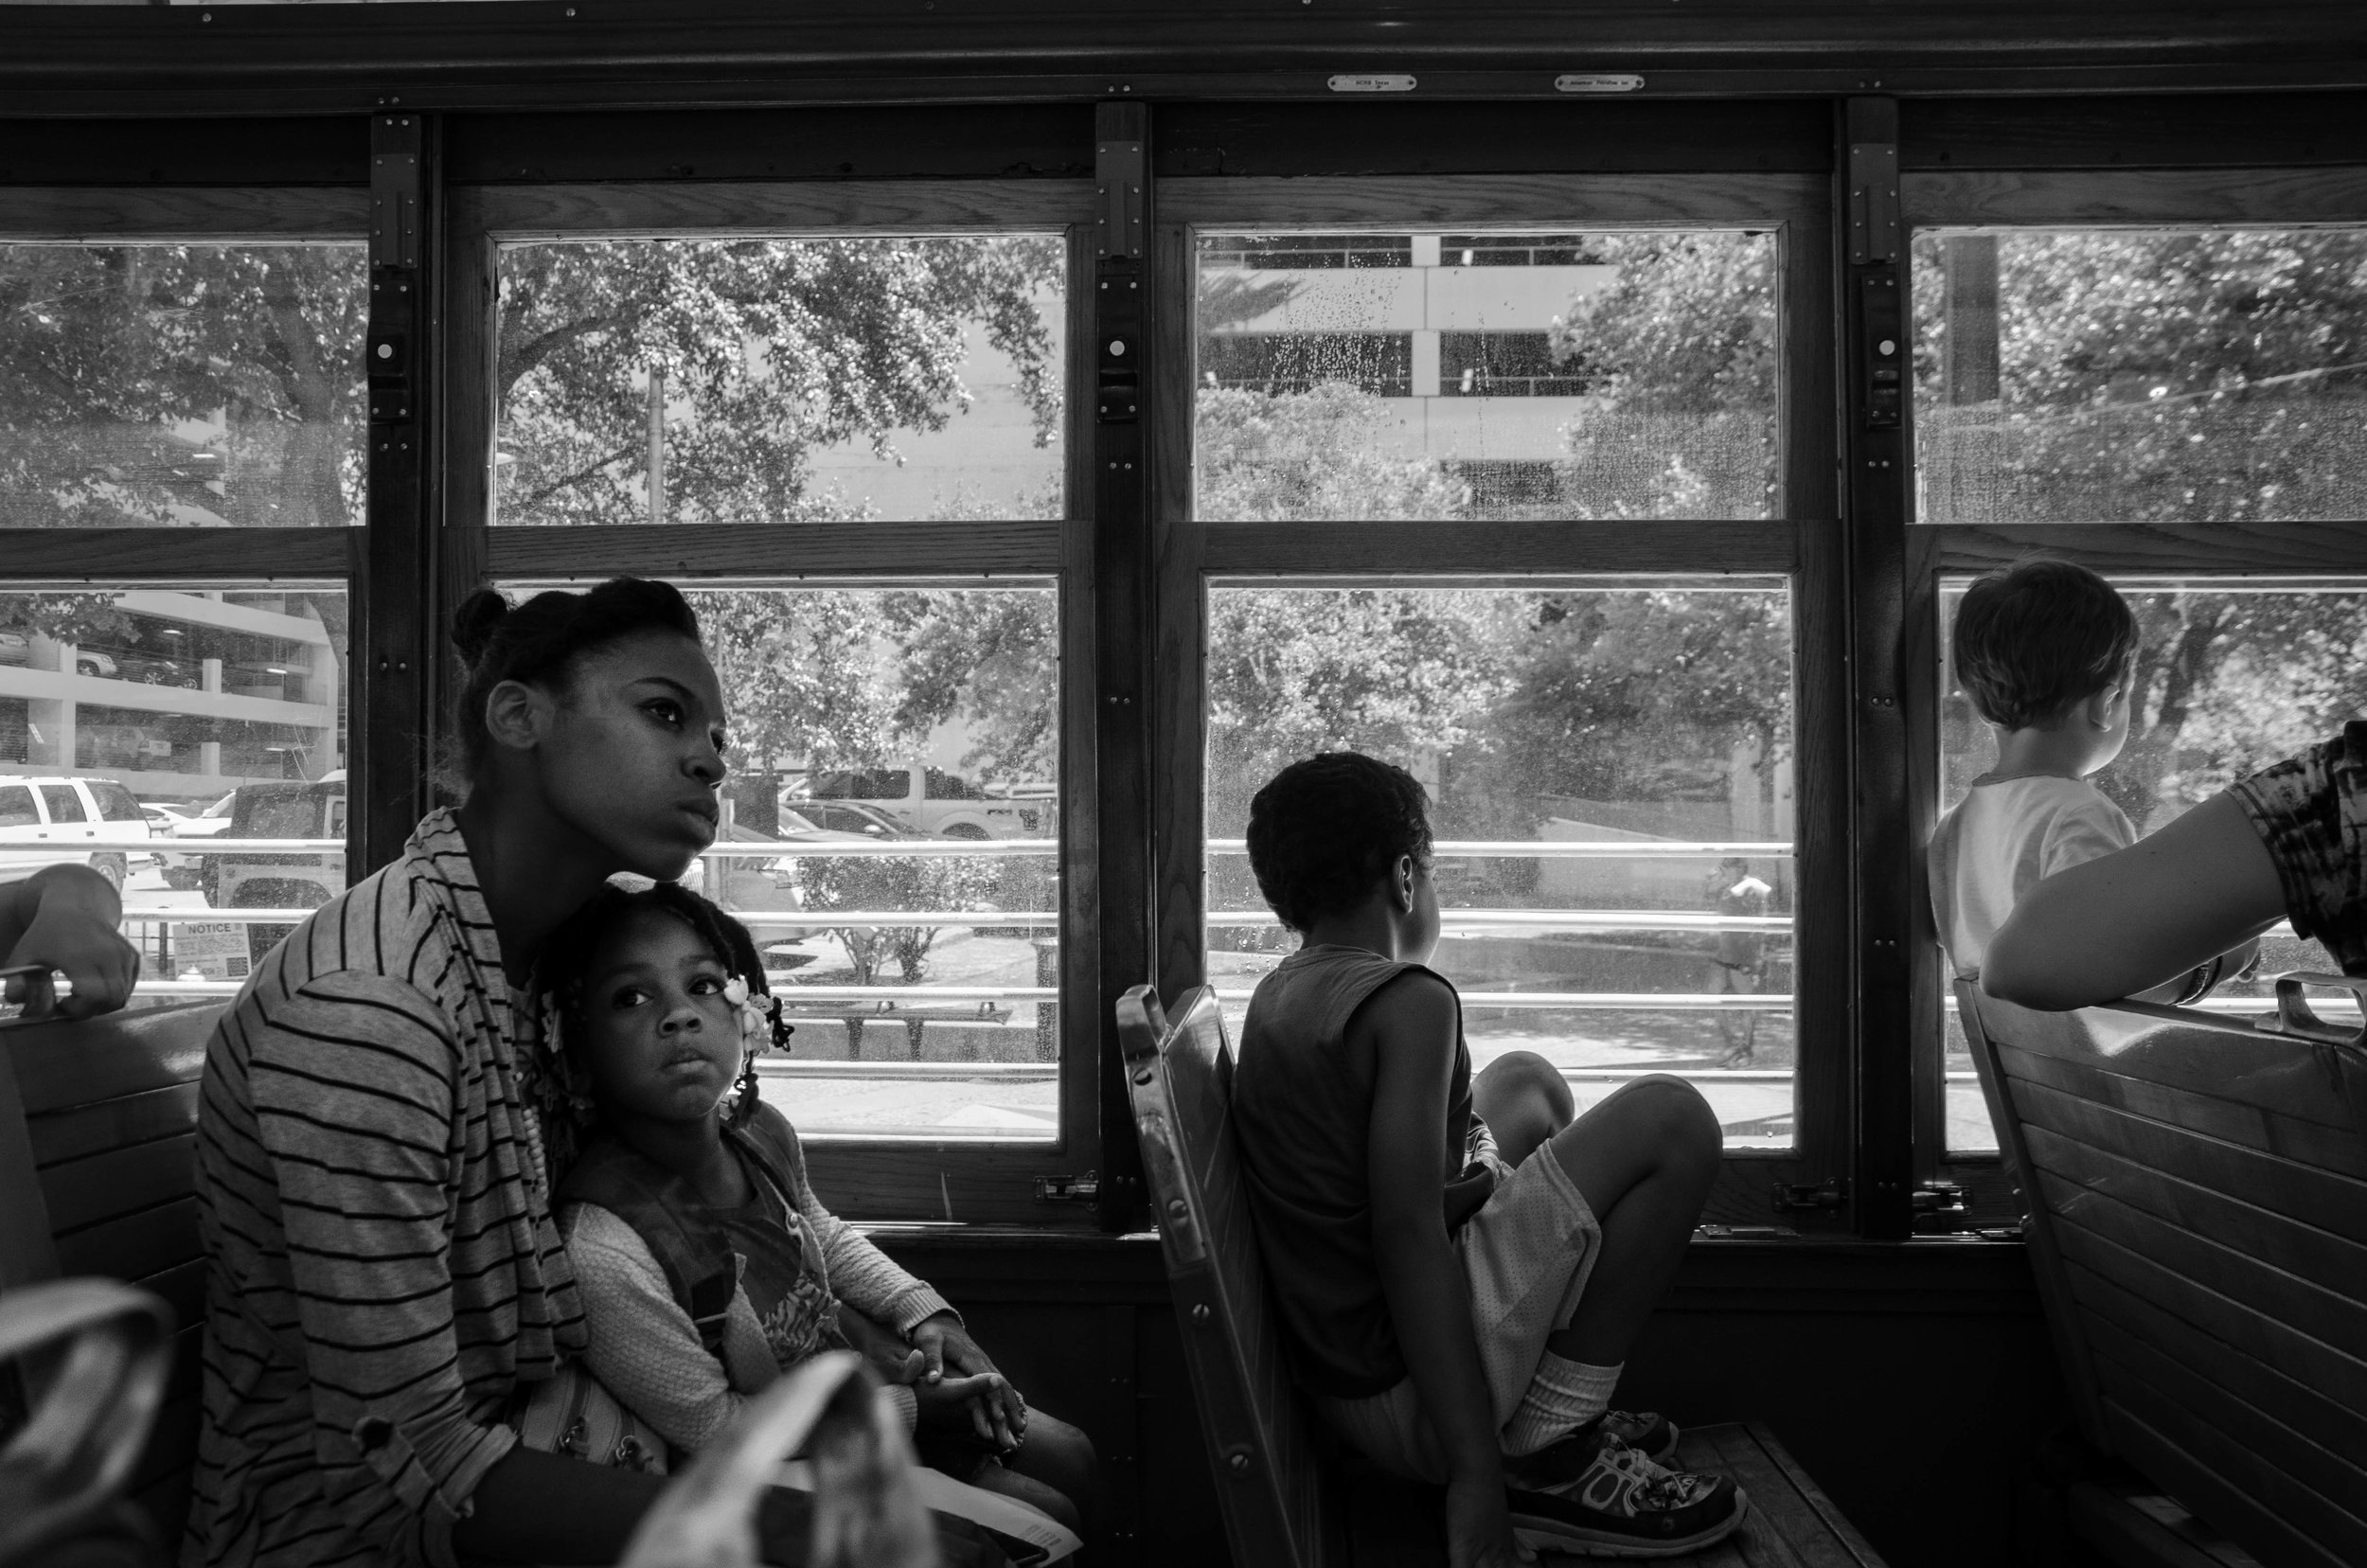 Two young women ride the trolley in Dallas, Texas.